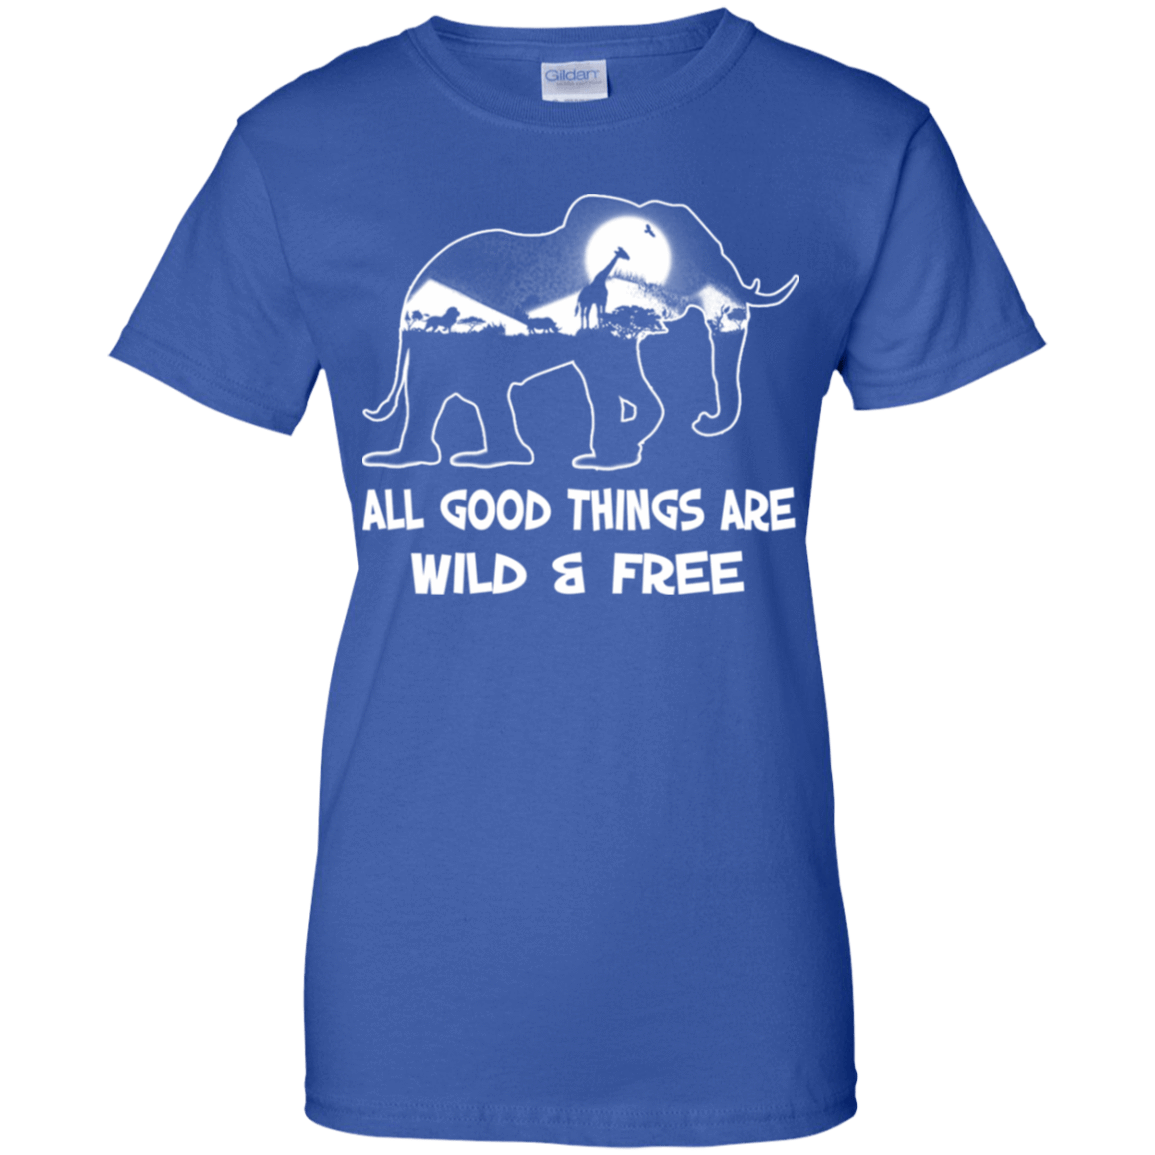 All Good Things Are Wild & Free 939-9264-72772262-44807 - Tee Ript